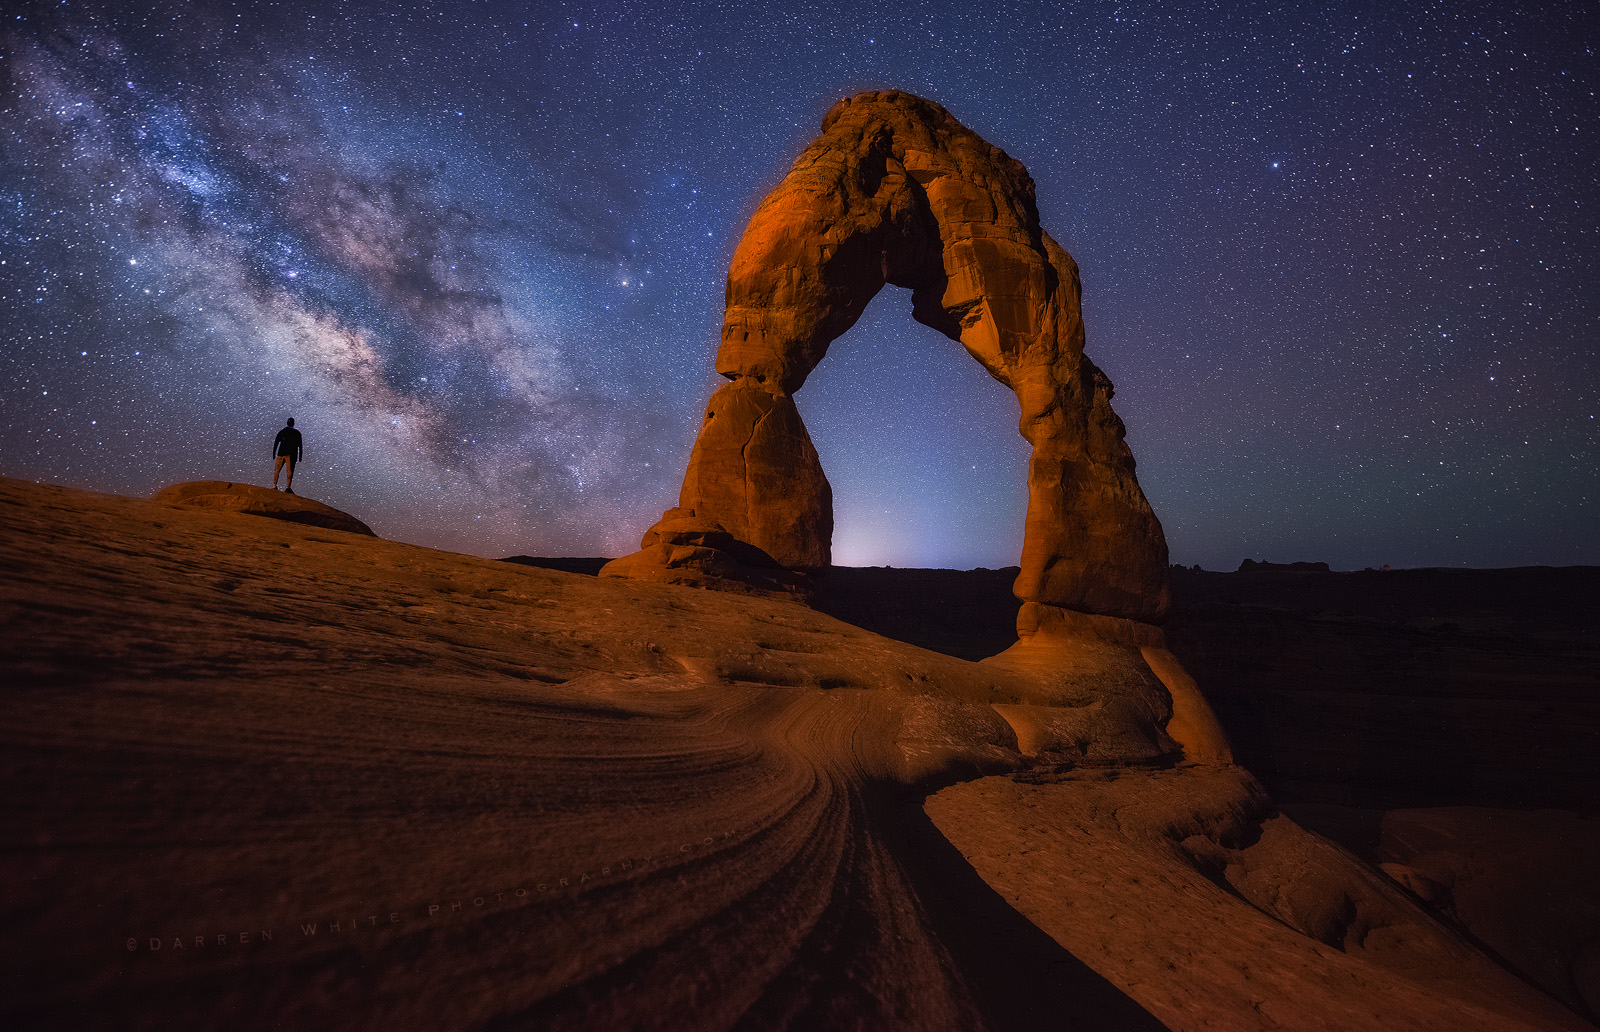 Milky Way Photography Workshop In Arches Canyonlands Beyond 4 Nights With Up To 12 Students September 19 23 2020 Night Photography Workshop